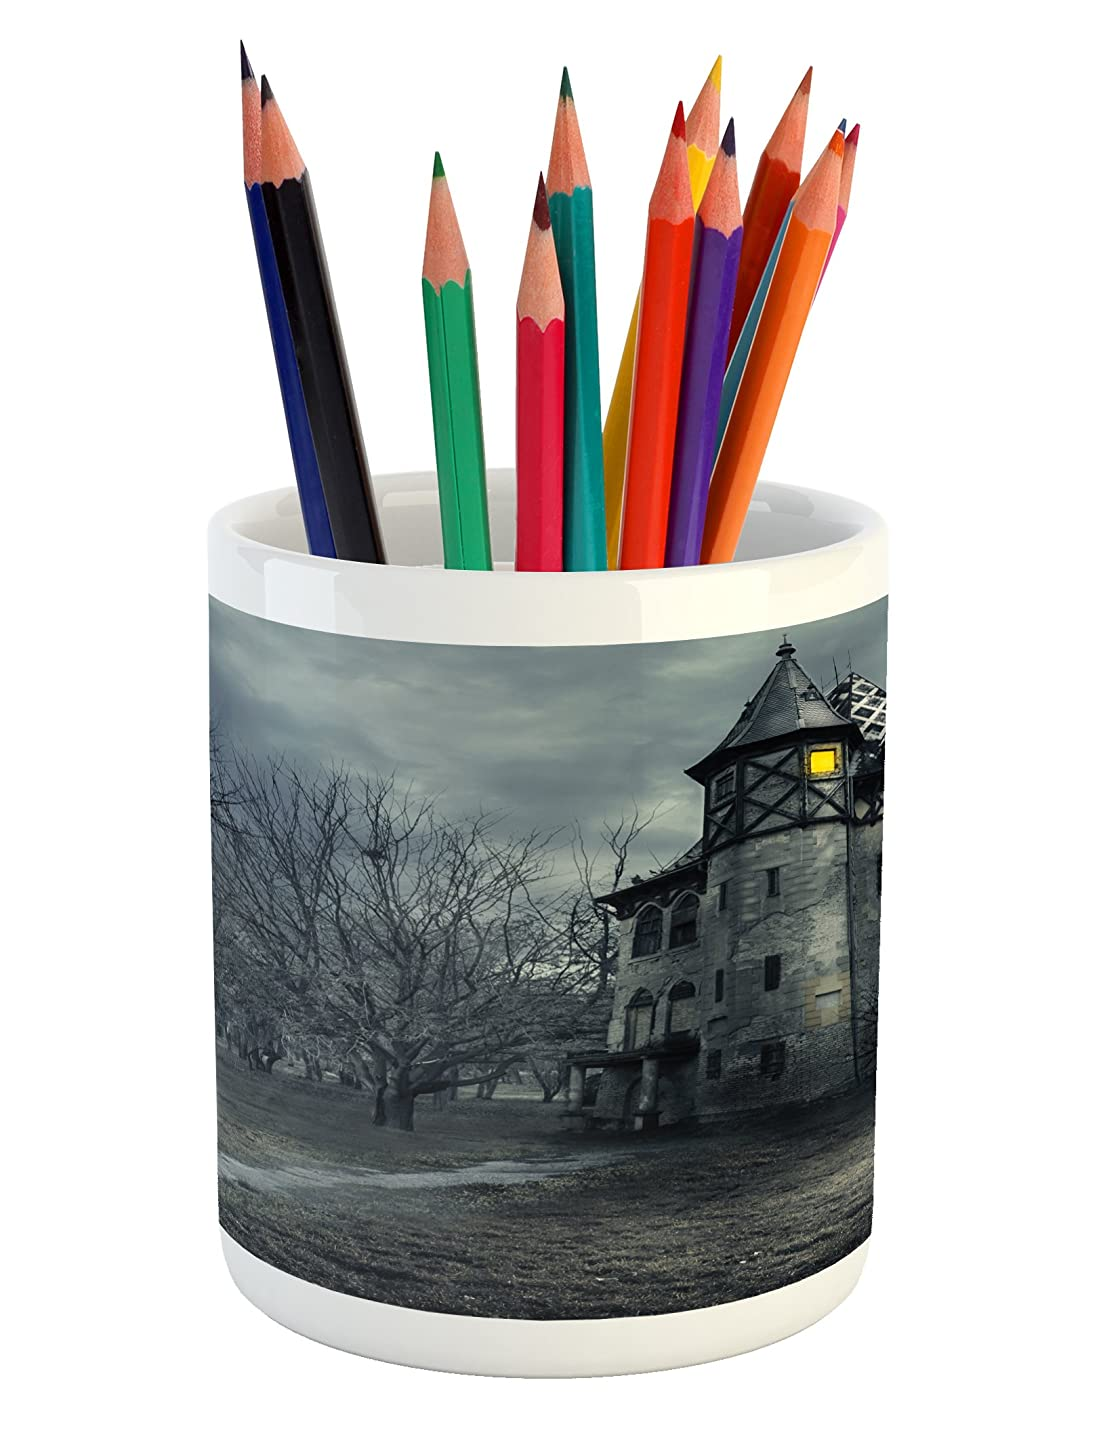 Ambesonne Halloween Pencil Pen Holder, Halloween Design with Gothic Haunted House Dark Sky and Leafless Trees Spooky Theme, Printed Ceramic Pencil Pen Holder for Desk Office Accessory, Teal